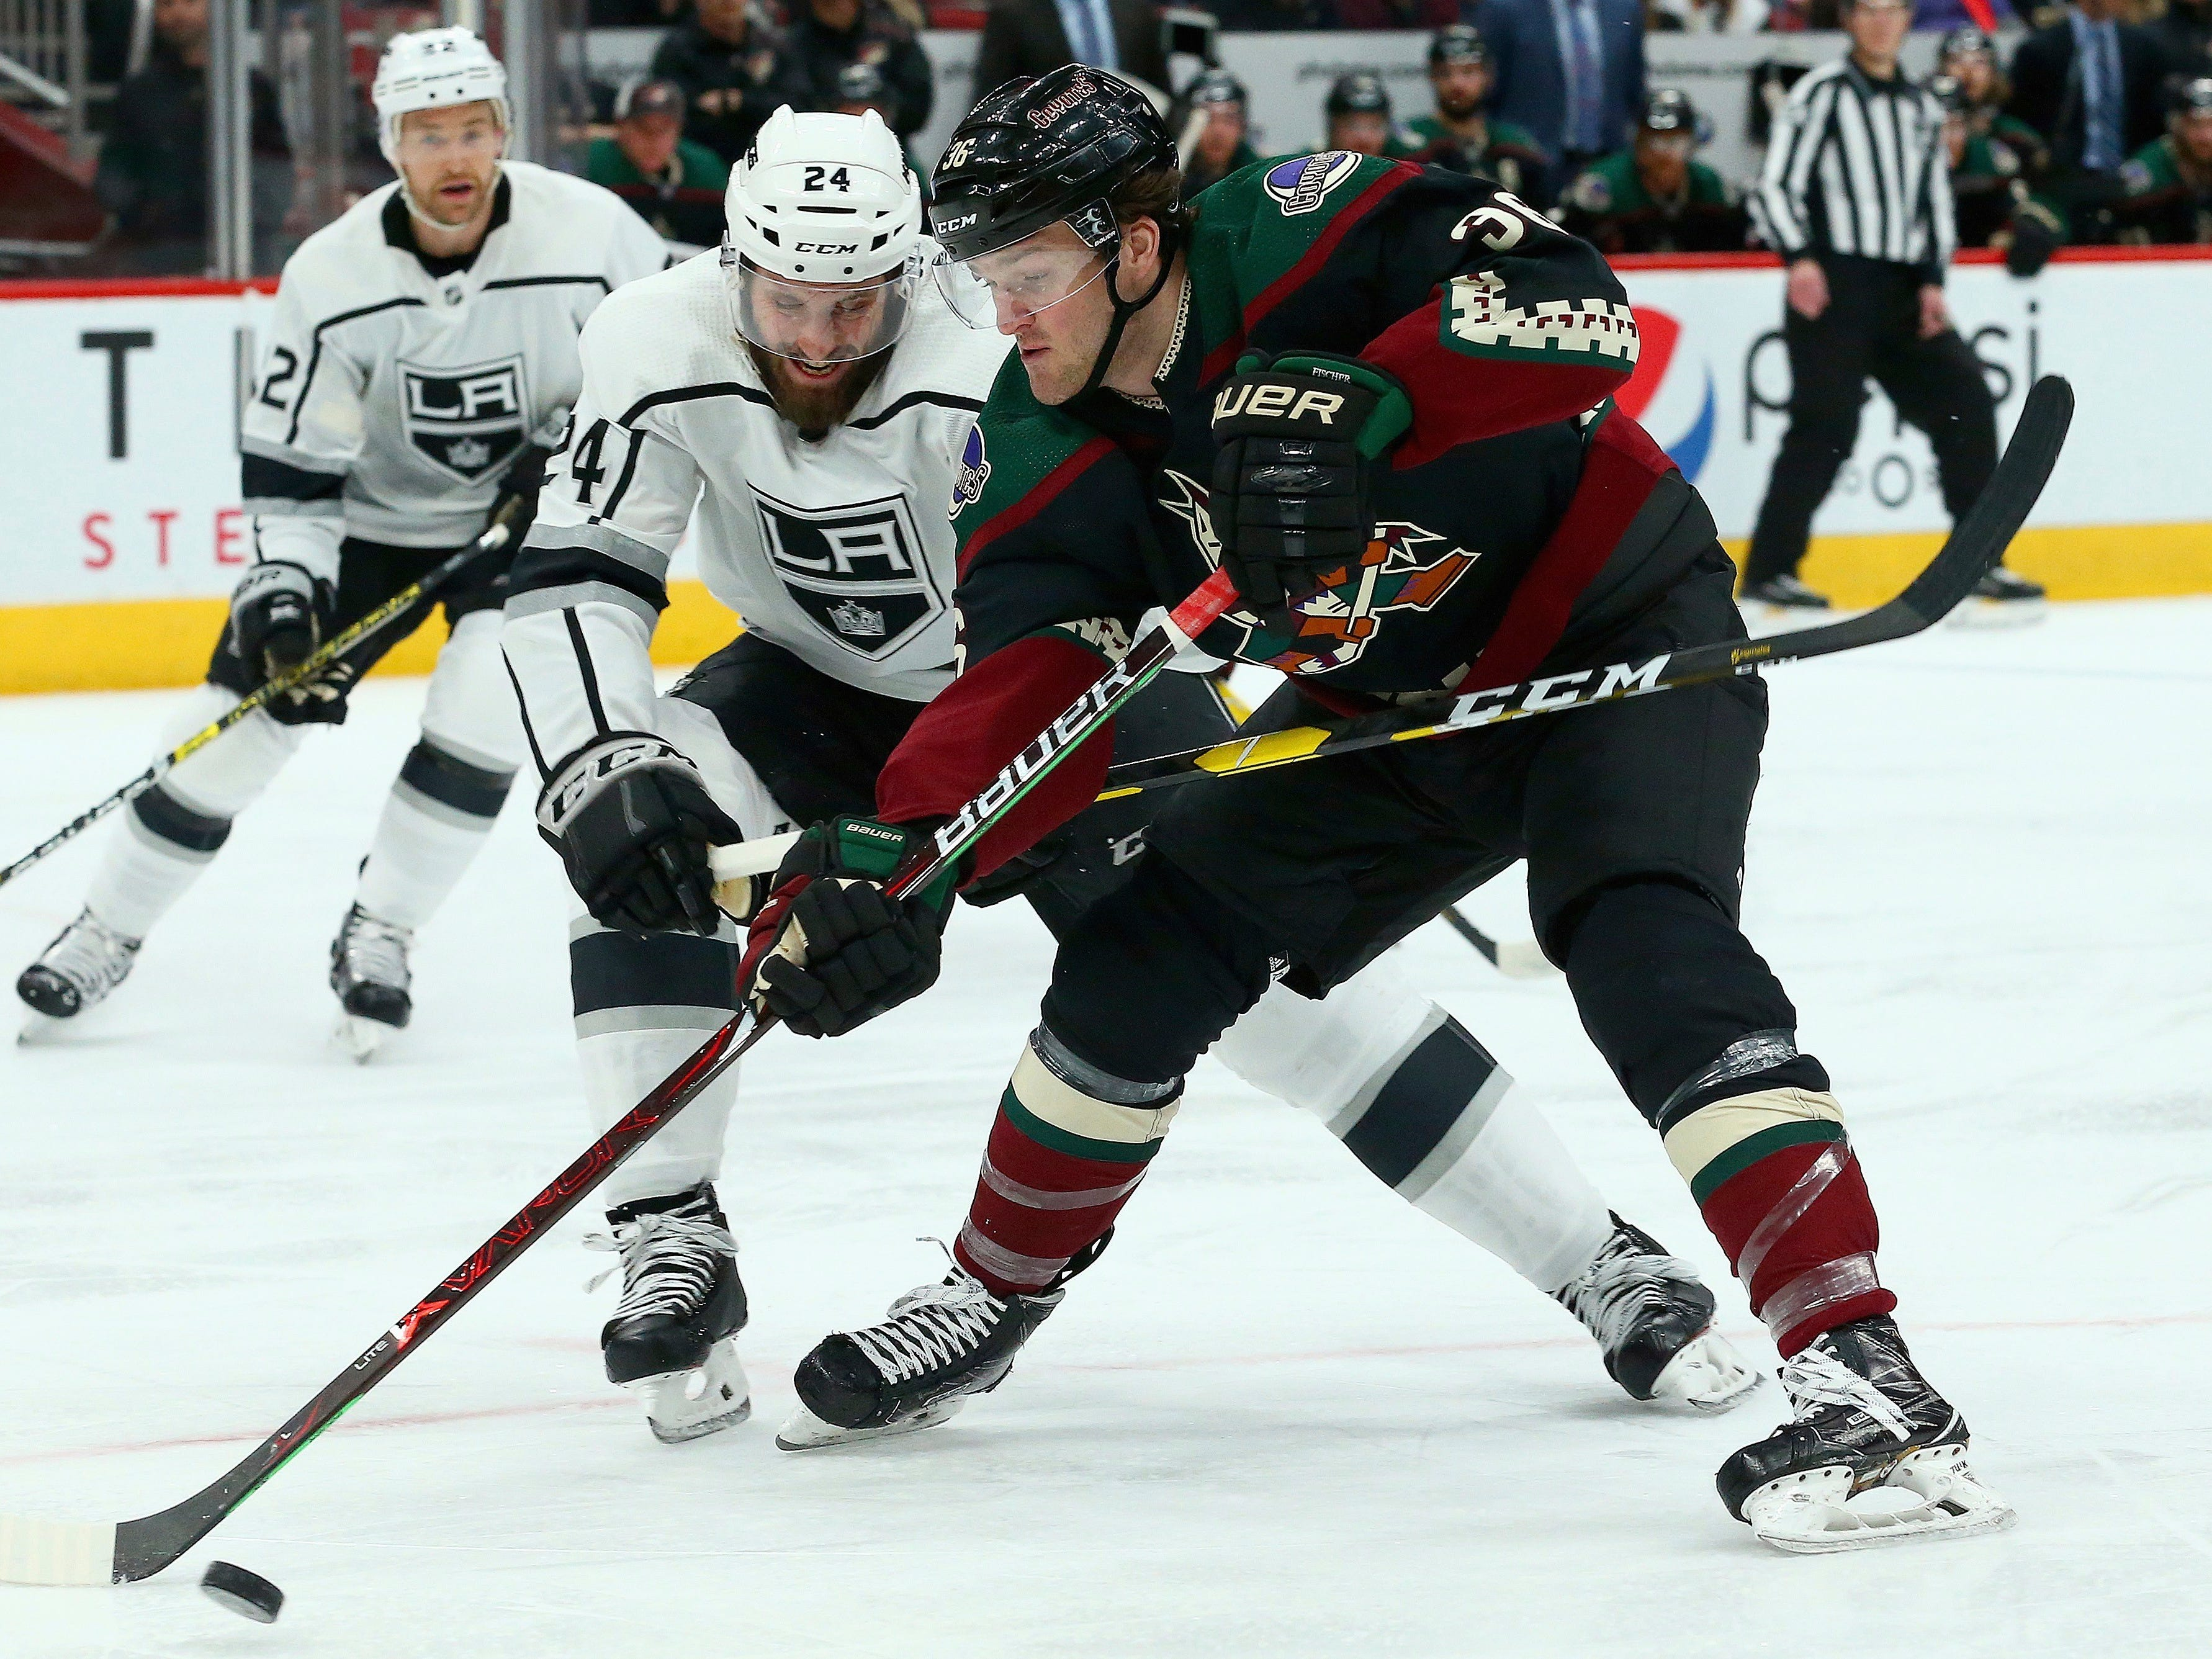 Arizona Coyotes right wing Christian Fischer (36) tries to get off a shot as Los Angeles Kings defenseman Derek Forbort (24) applies pressure while Kings center Trevor Lewis, left, looks on during the second period of an NHL hockey game Saturday, March 9, 2019, in Glendale, Ariz.